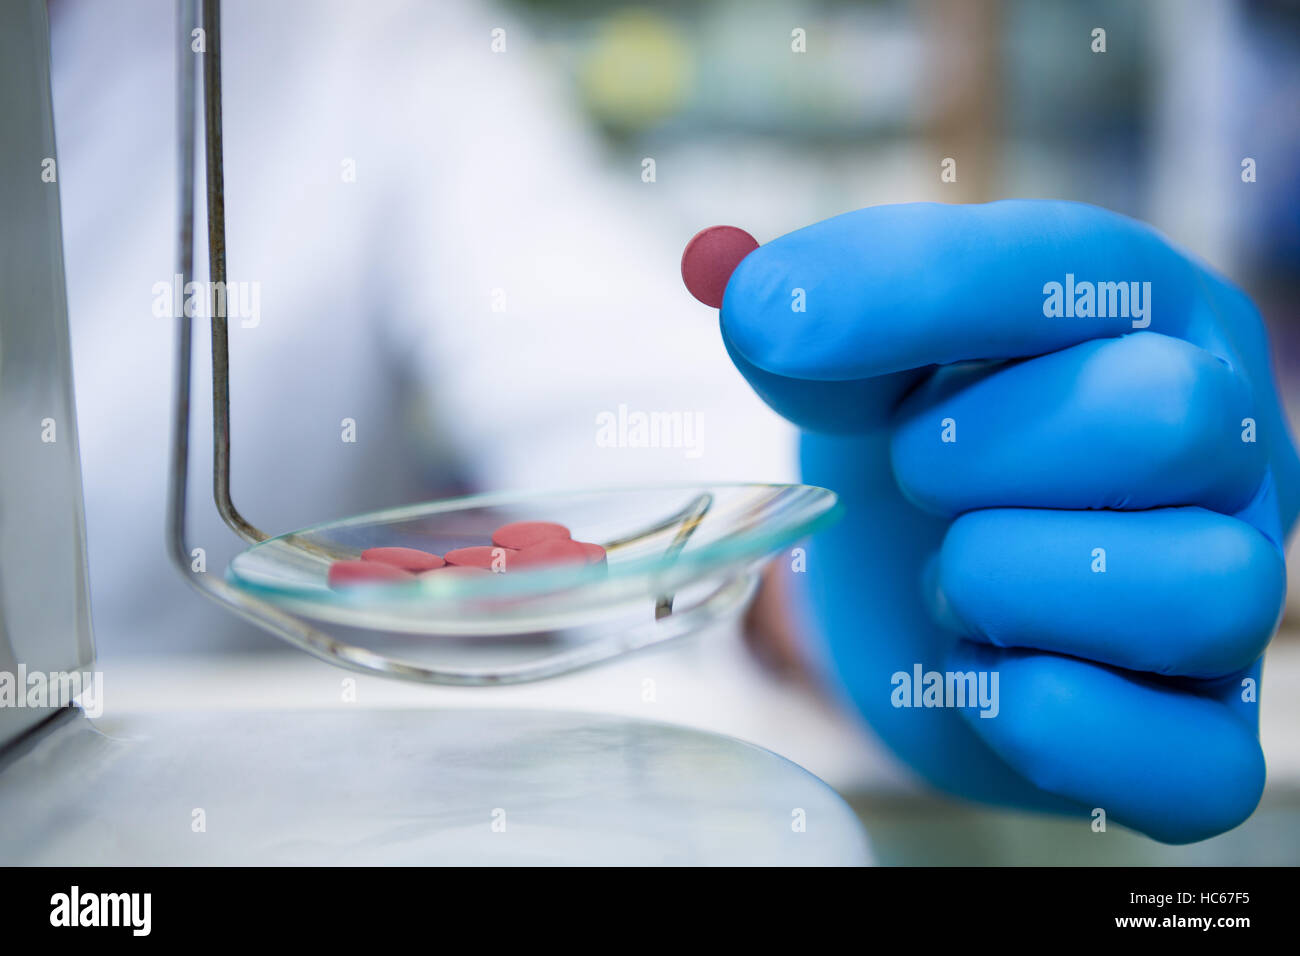 Pharmacist measuring tablets with pharmacy scale - Stock Image